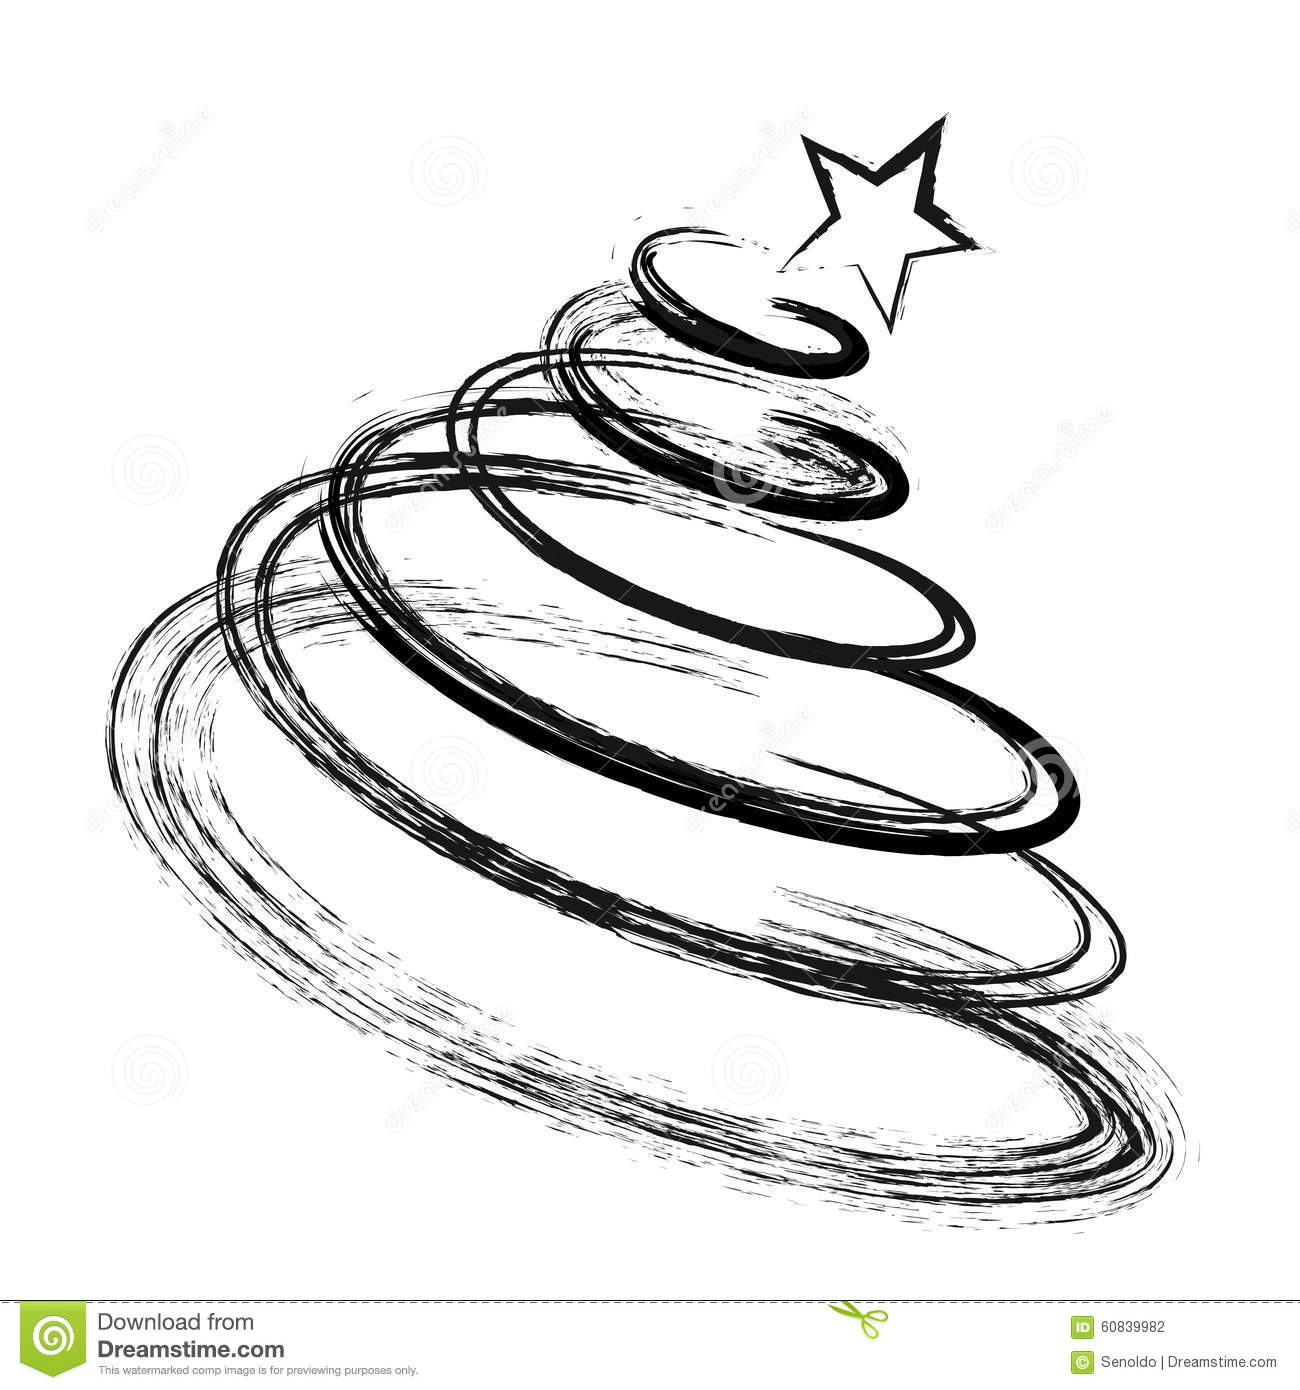 Christmas tree drawing black and white - Abstract Drawing Christmas Fir Tree Black Silhouette With Sketch